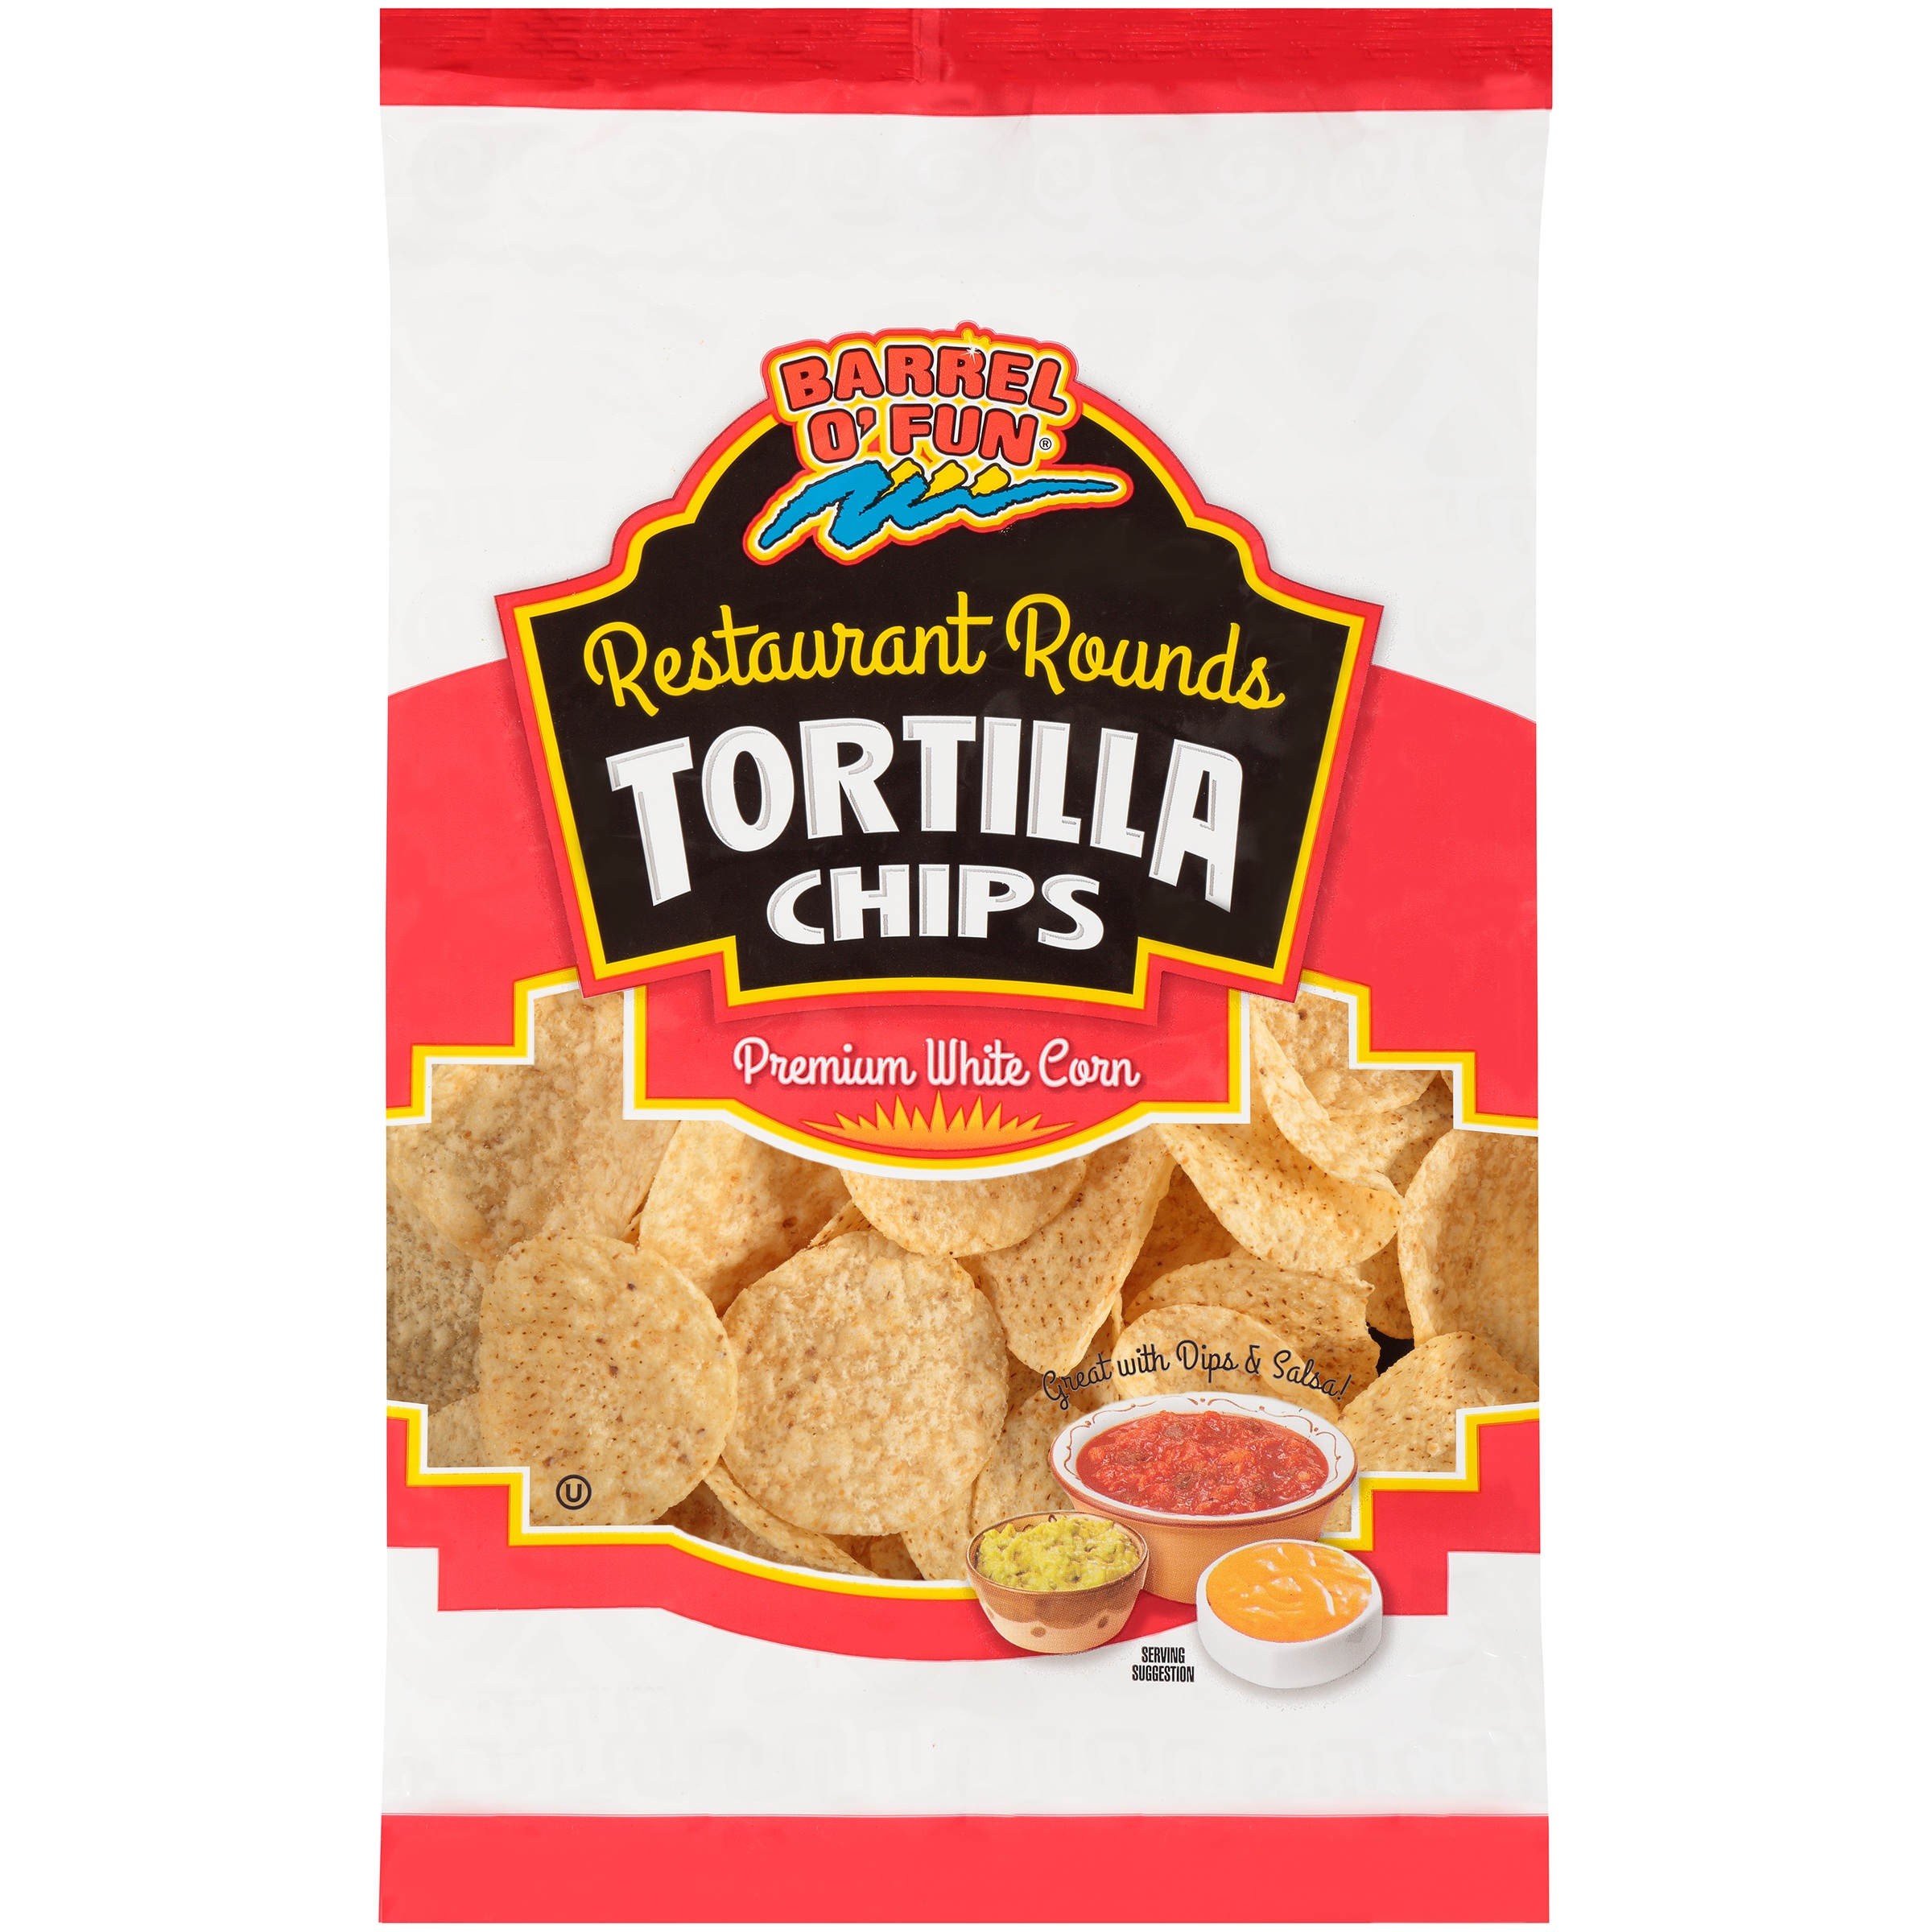 Barrel O' Fun® Restaurant Rounds Premium White Corn Tortilla Chips Bag